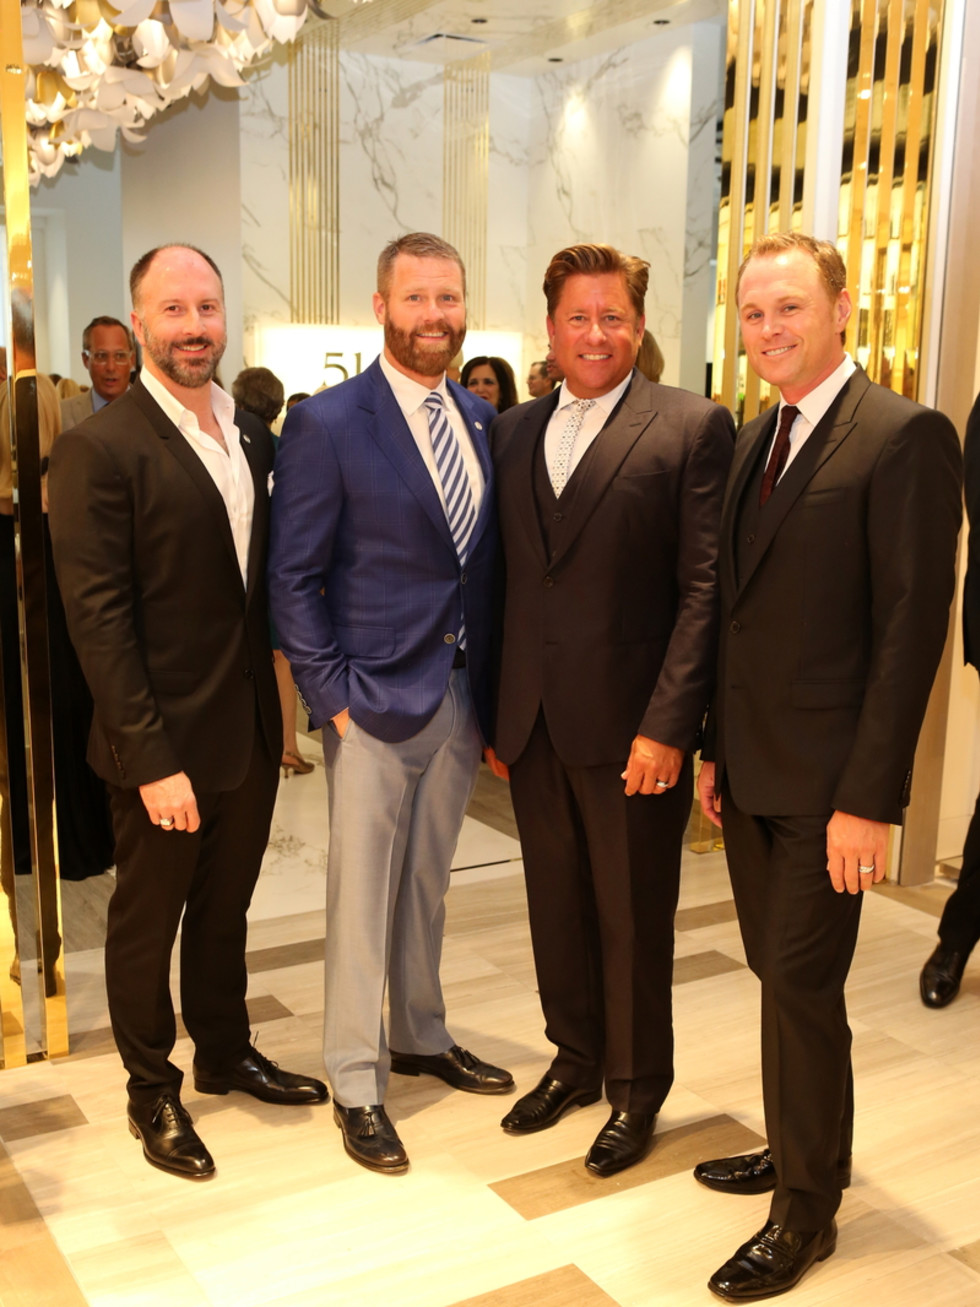 Saks Opening Dinner for HGO 4/16, Tony Bradfield, Kevin Black, Brian Teichman, Andrew Cordes